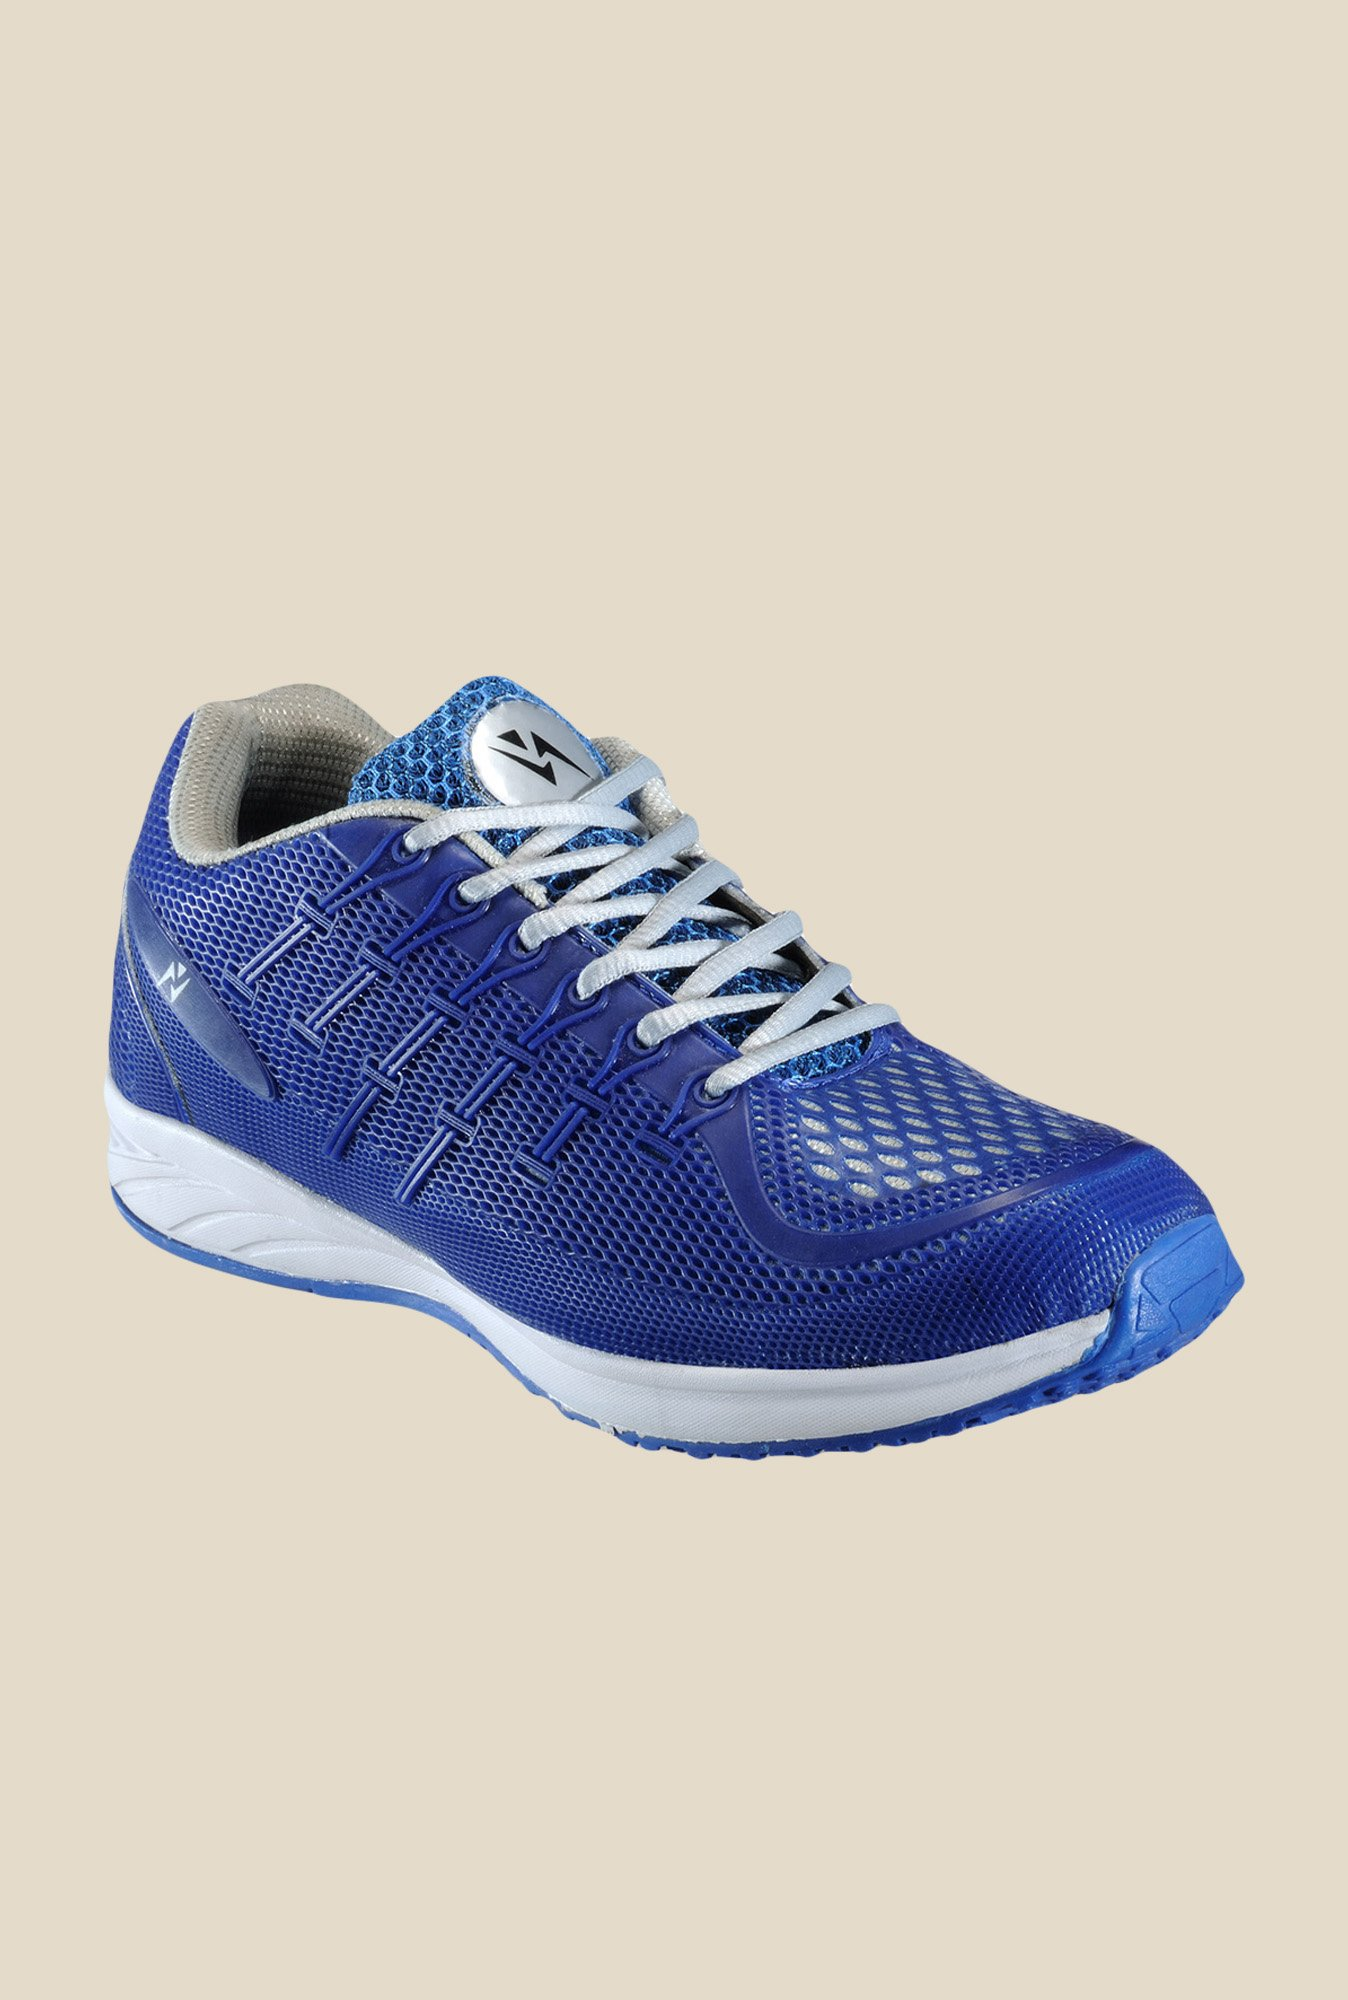 Yepme Blue & Grey Running Shoes